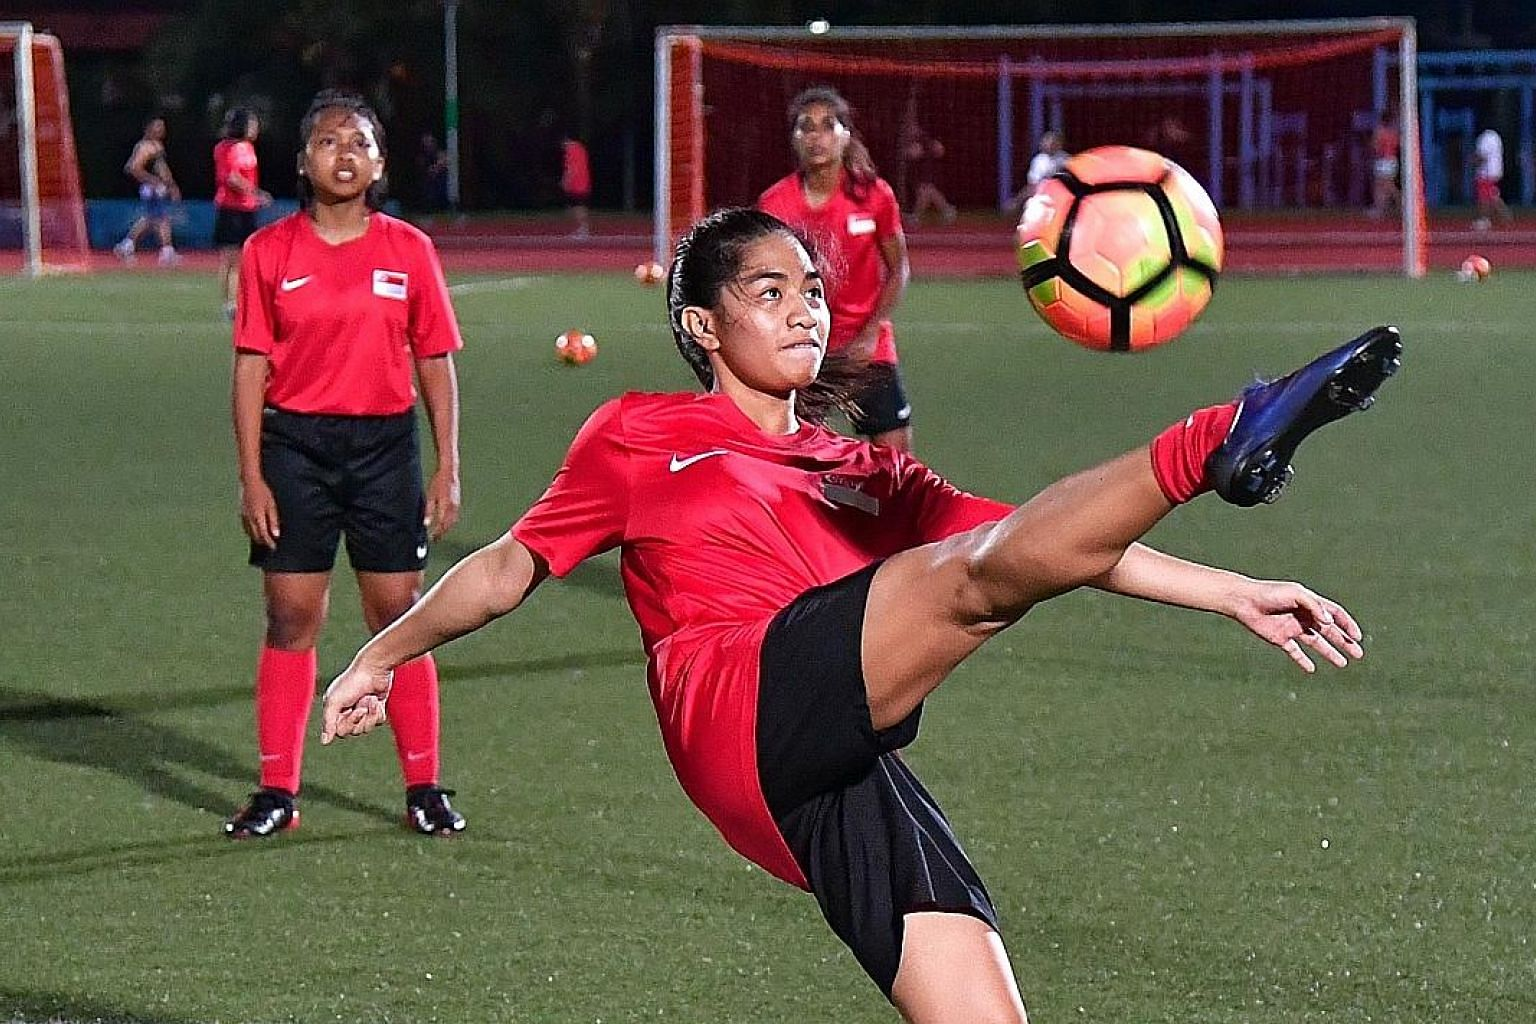 Stephanie Gigette Dominguez, 19, during training at Serangoon Stadium. The footballers need a decent run at the women's Asian Cup qualifiers to earn the approval of the SEA Games selectors.